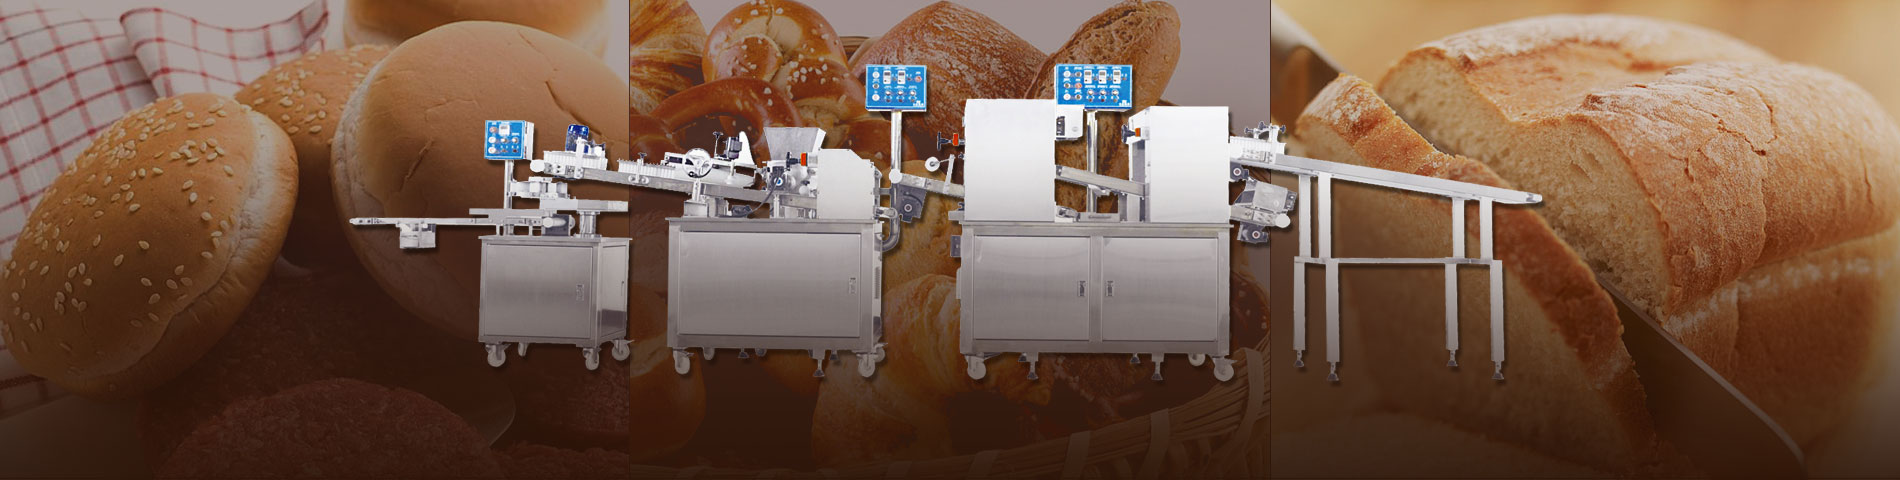 Bread, Toast, Burger Bread TY-8530 bread making machine